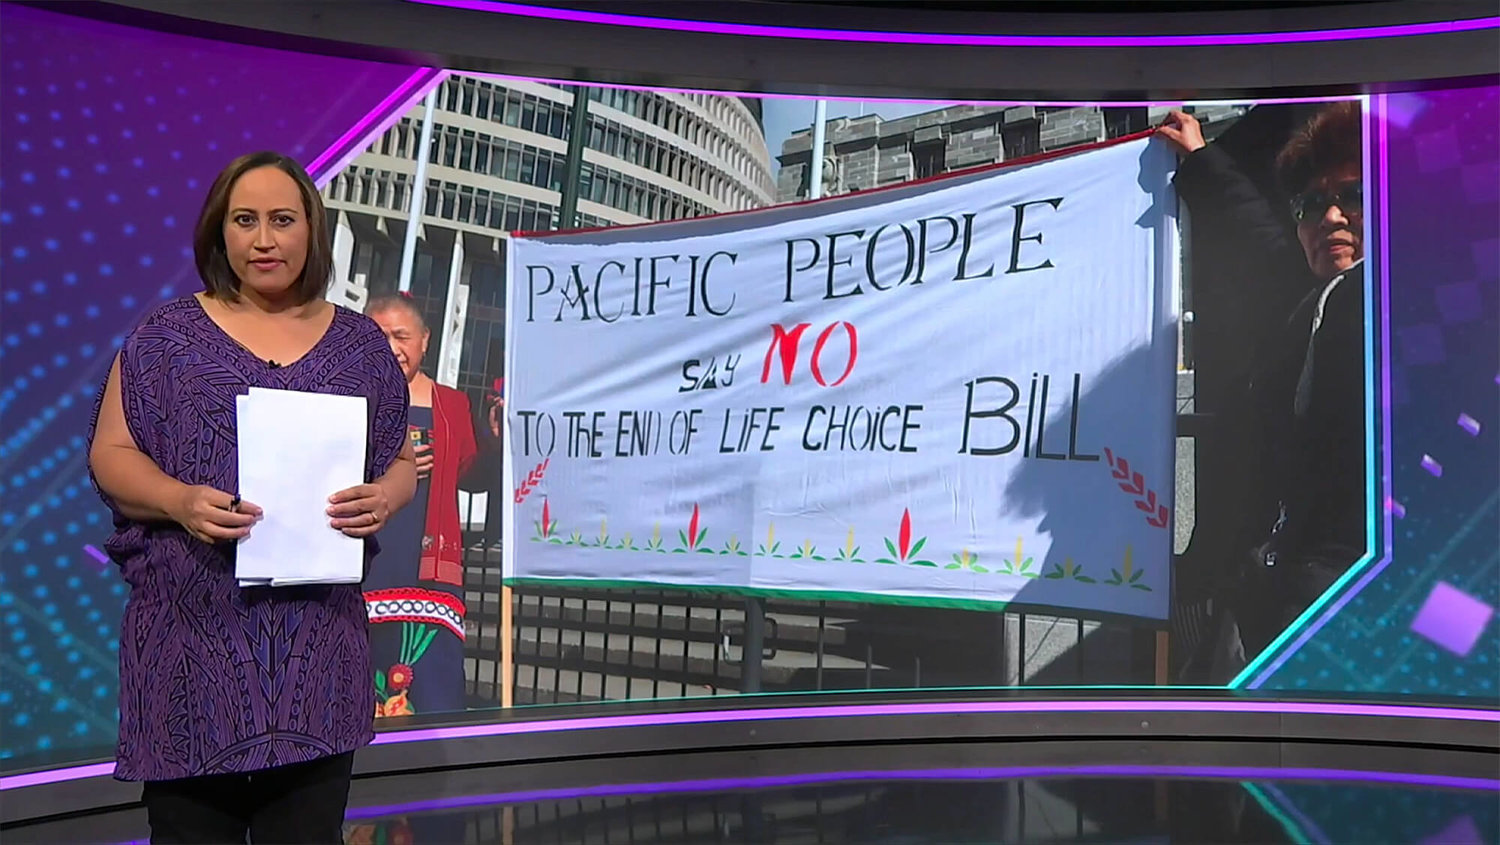 Tagata Pasifika: Pacific opponents of euthanasia Bill rally in the